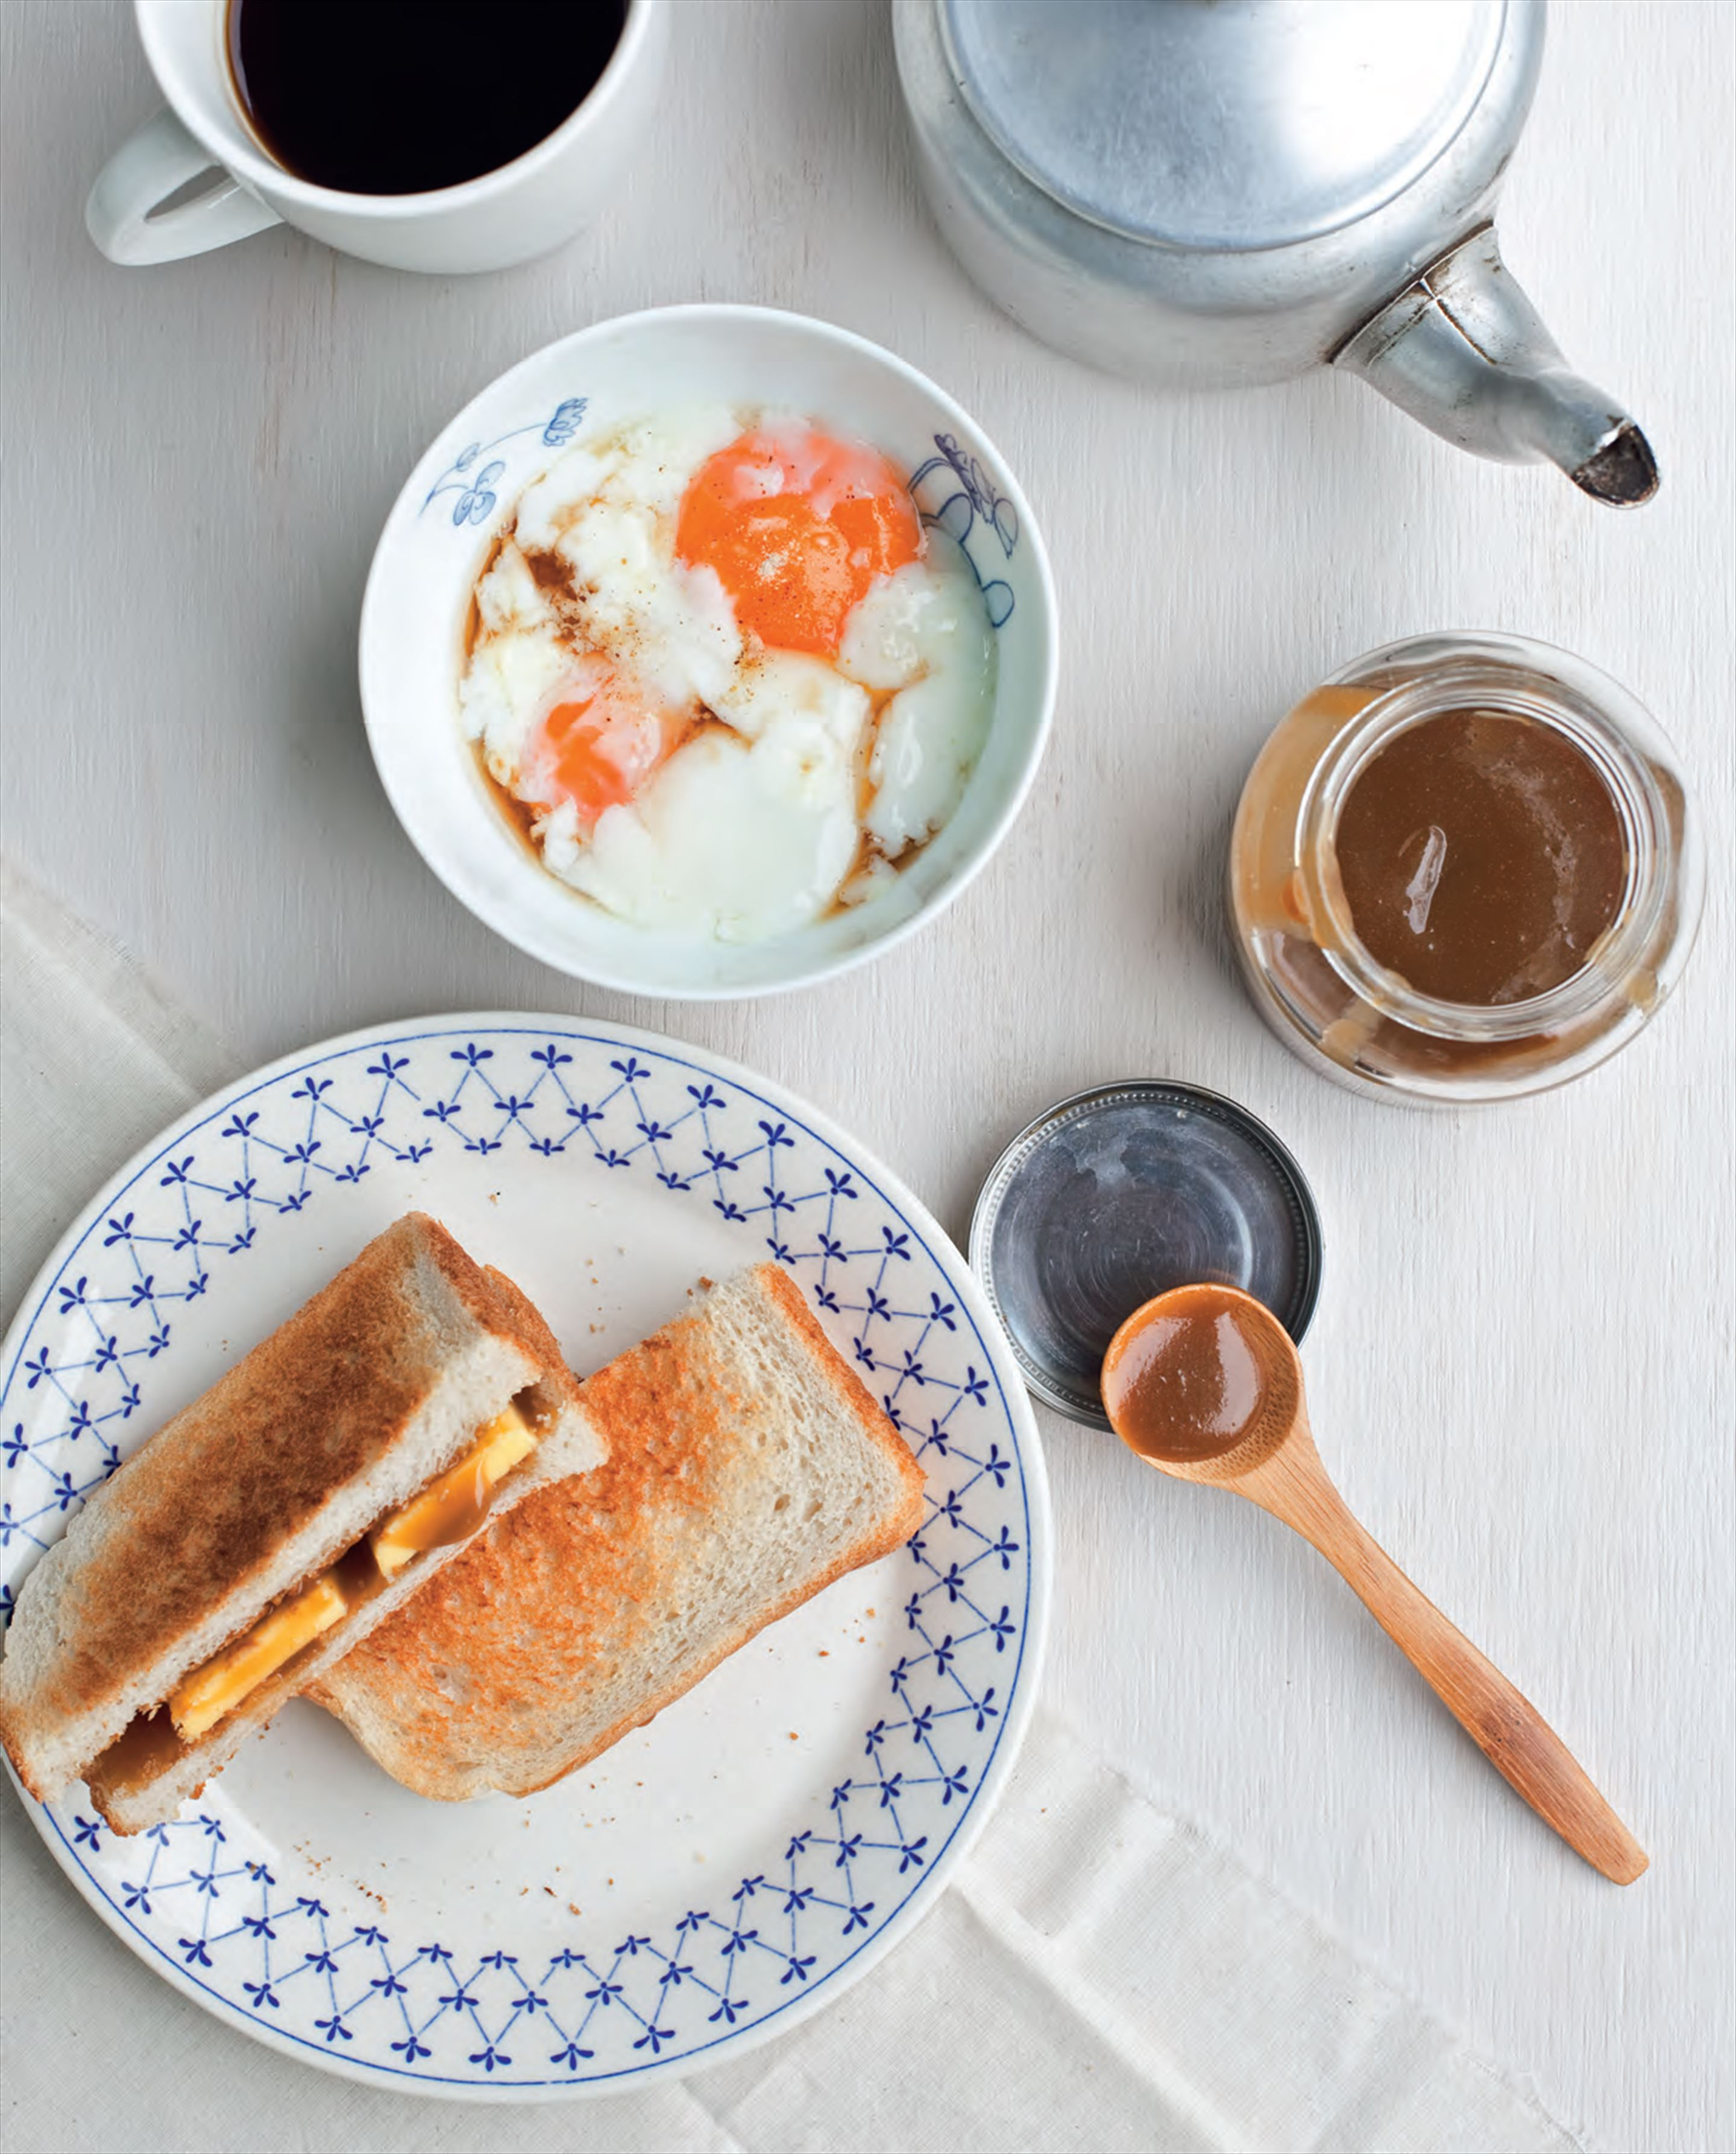 Kaya toast and soft-boiled eggs